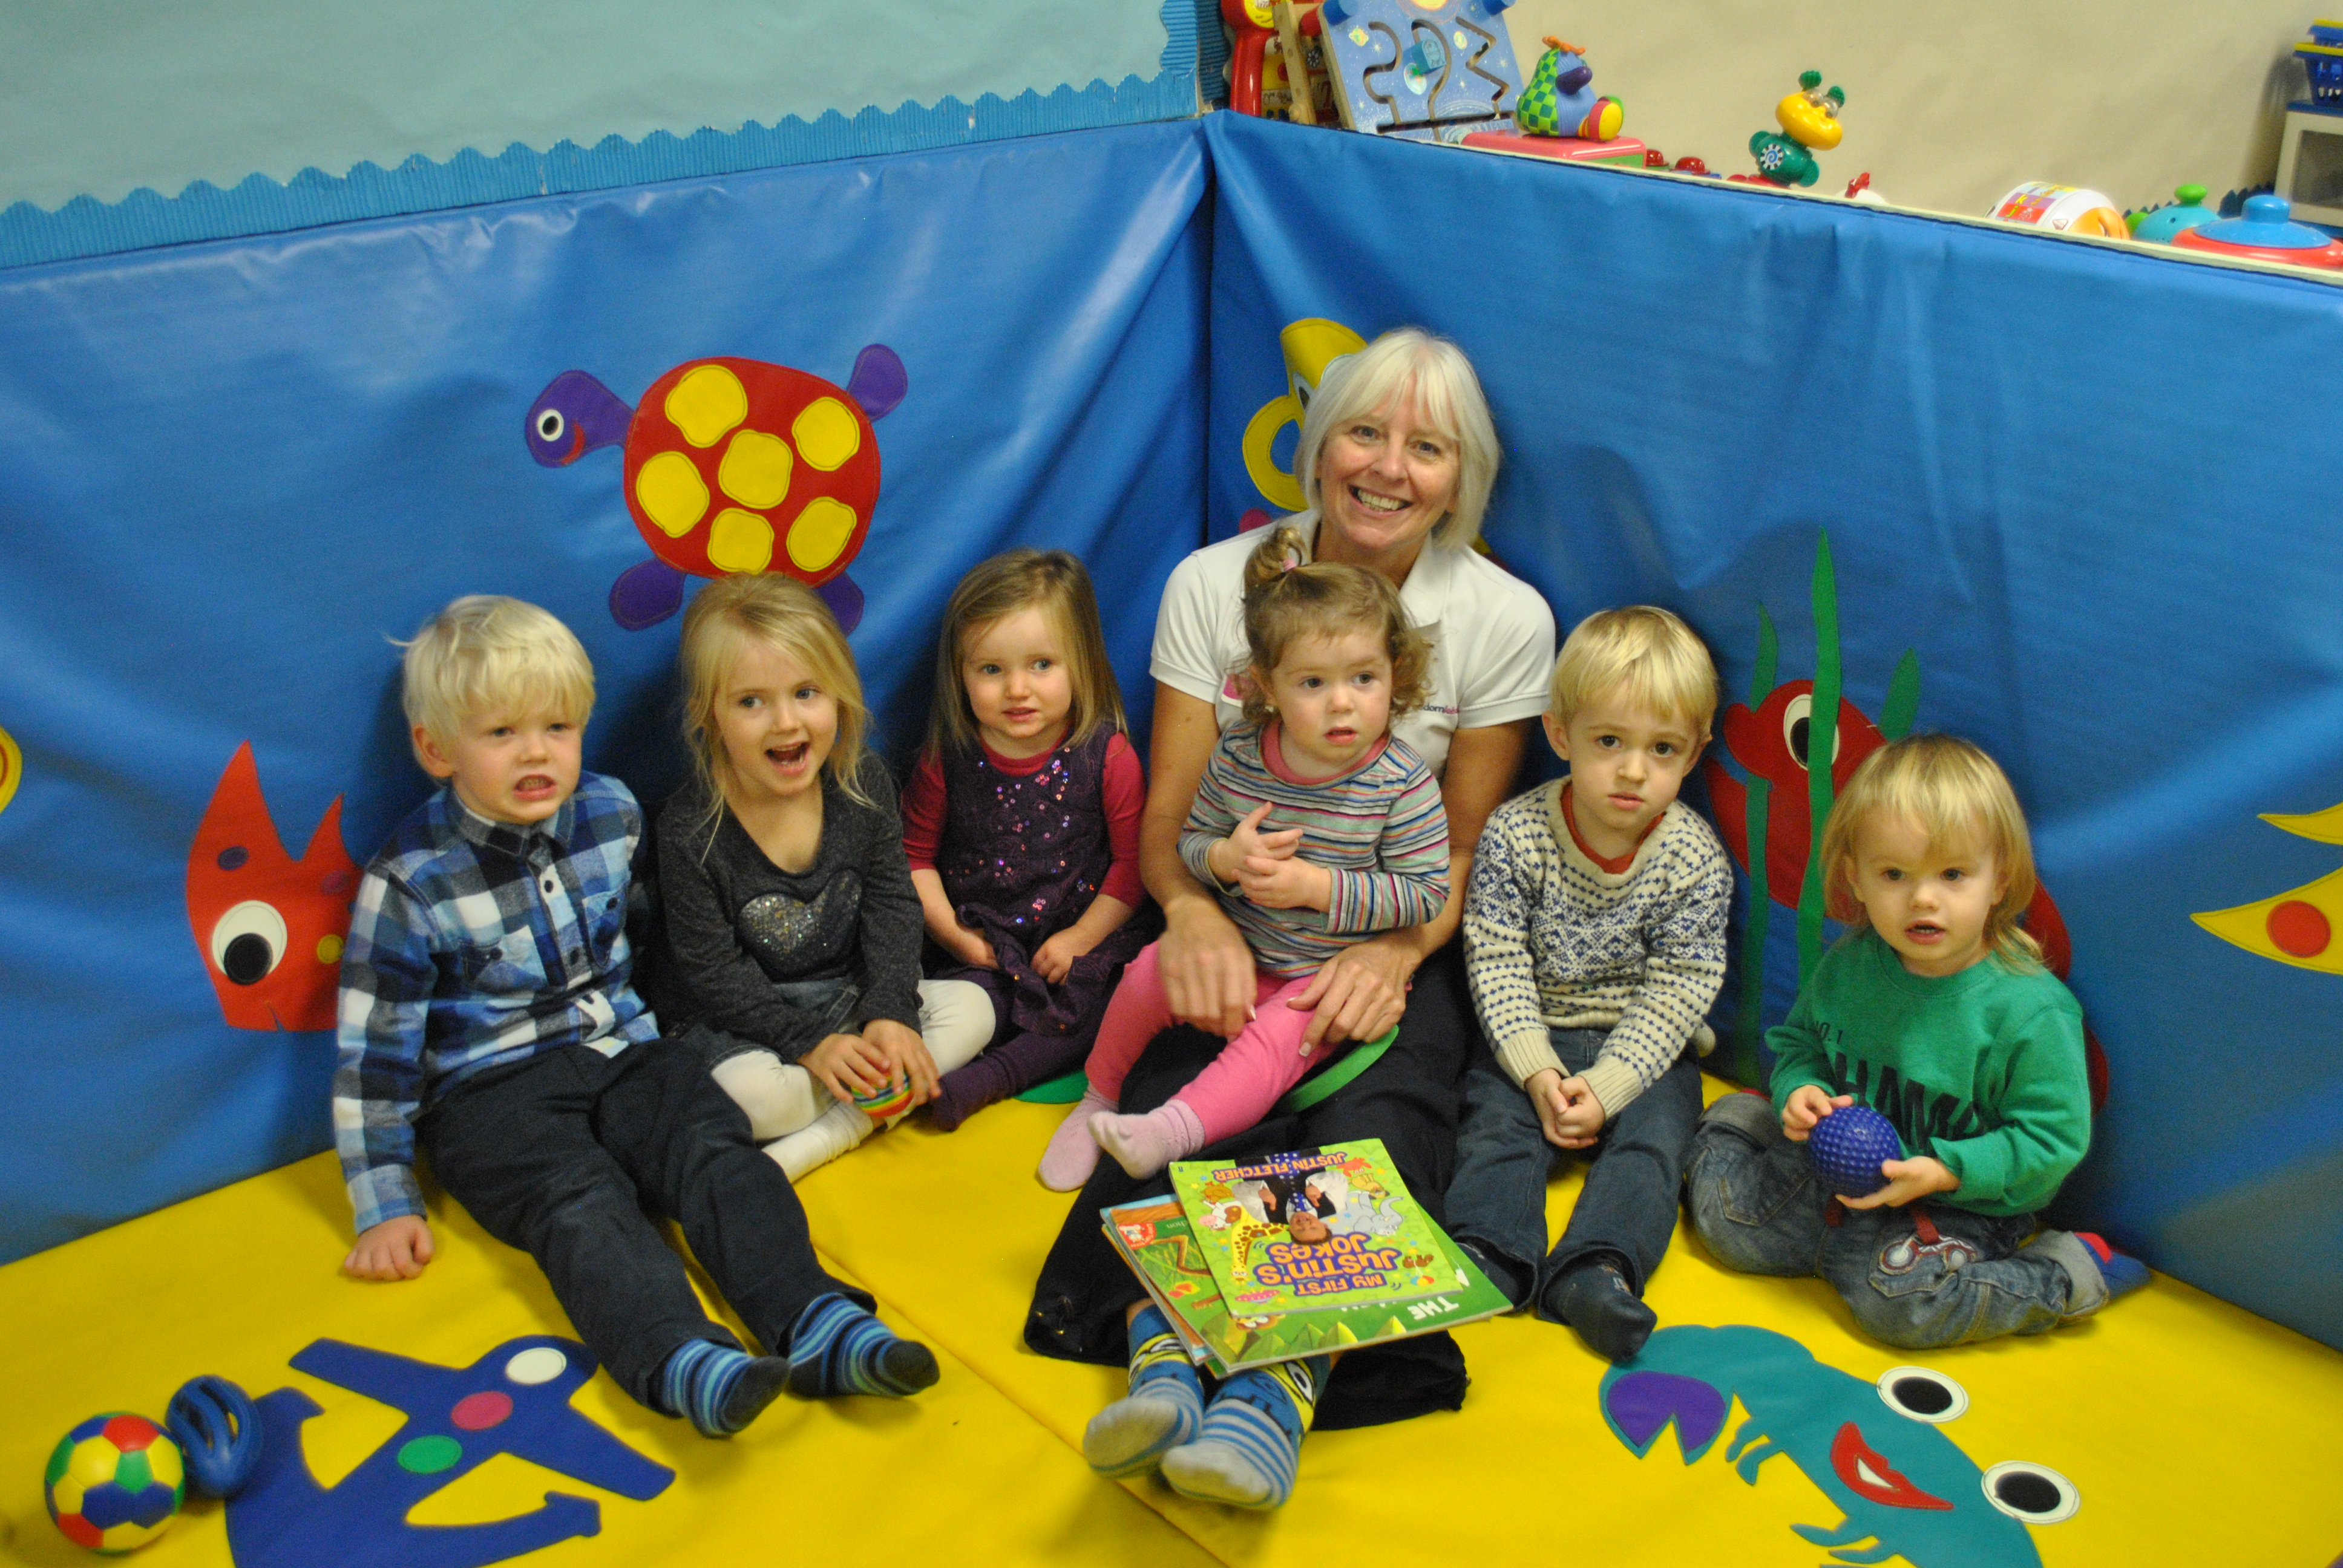 Spectrum crèche praised in Ofsted report